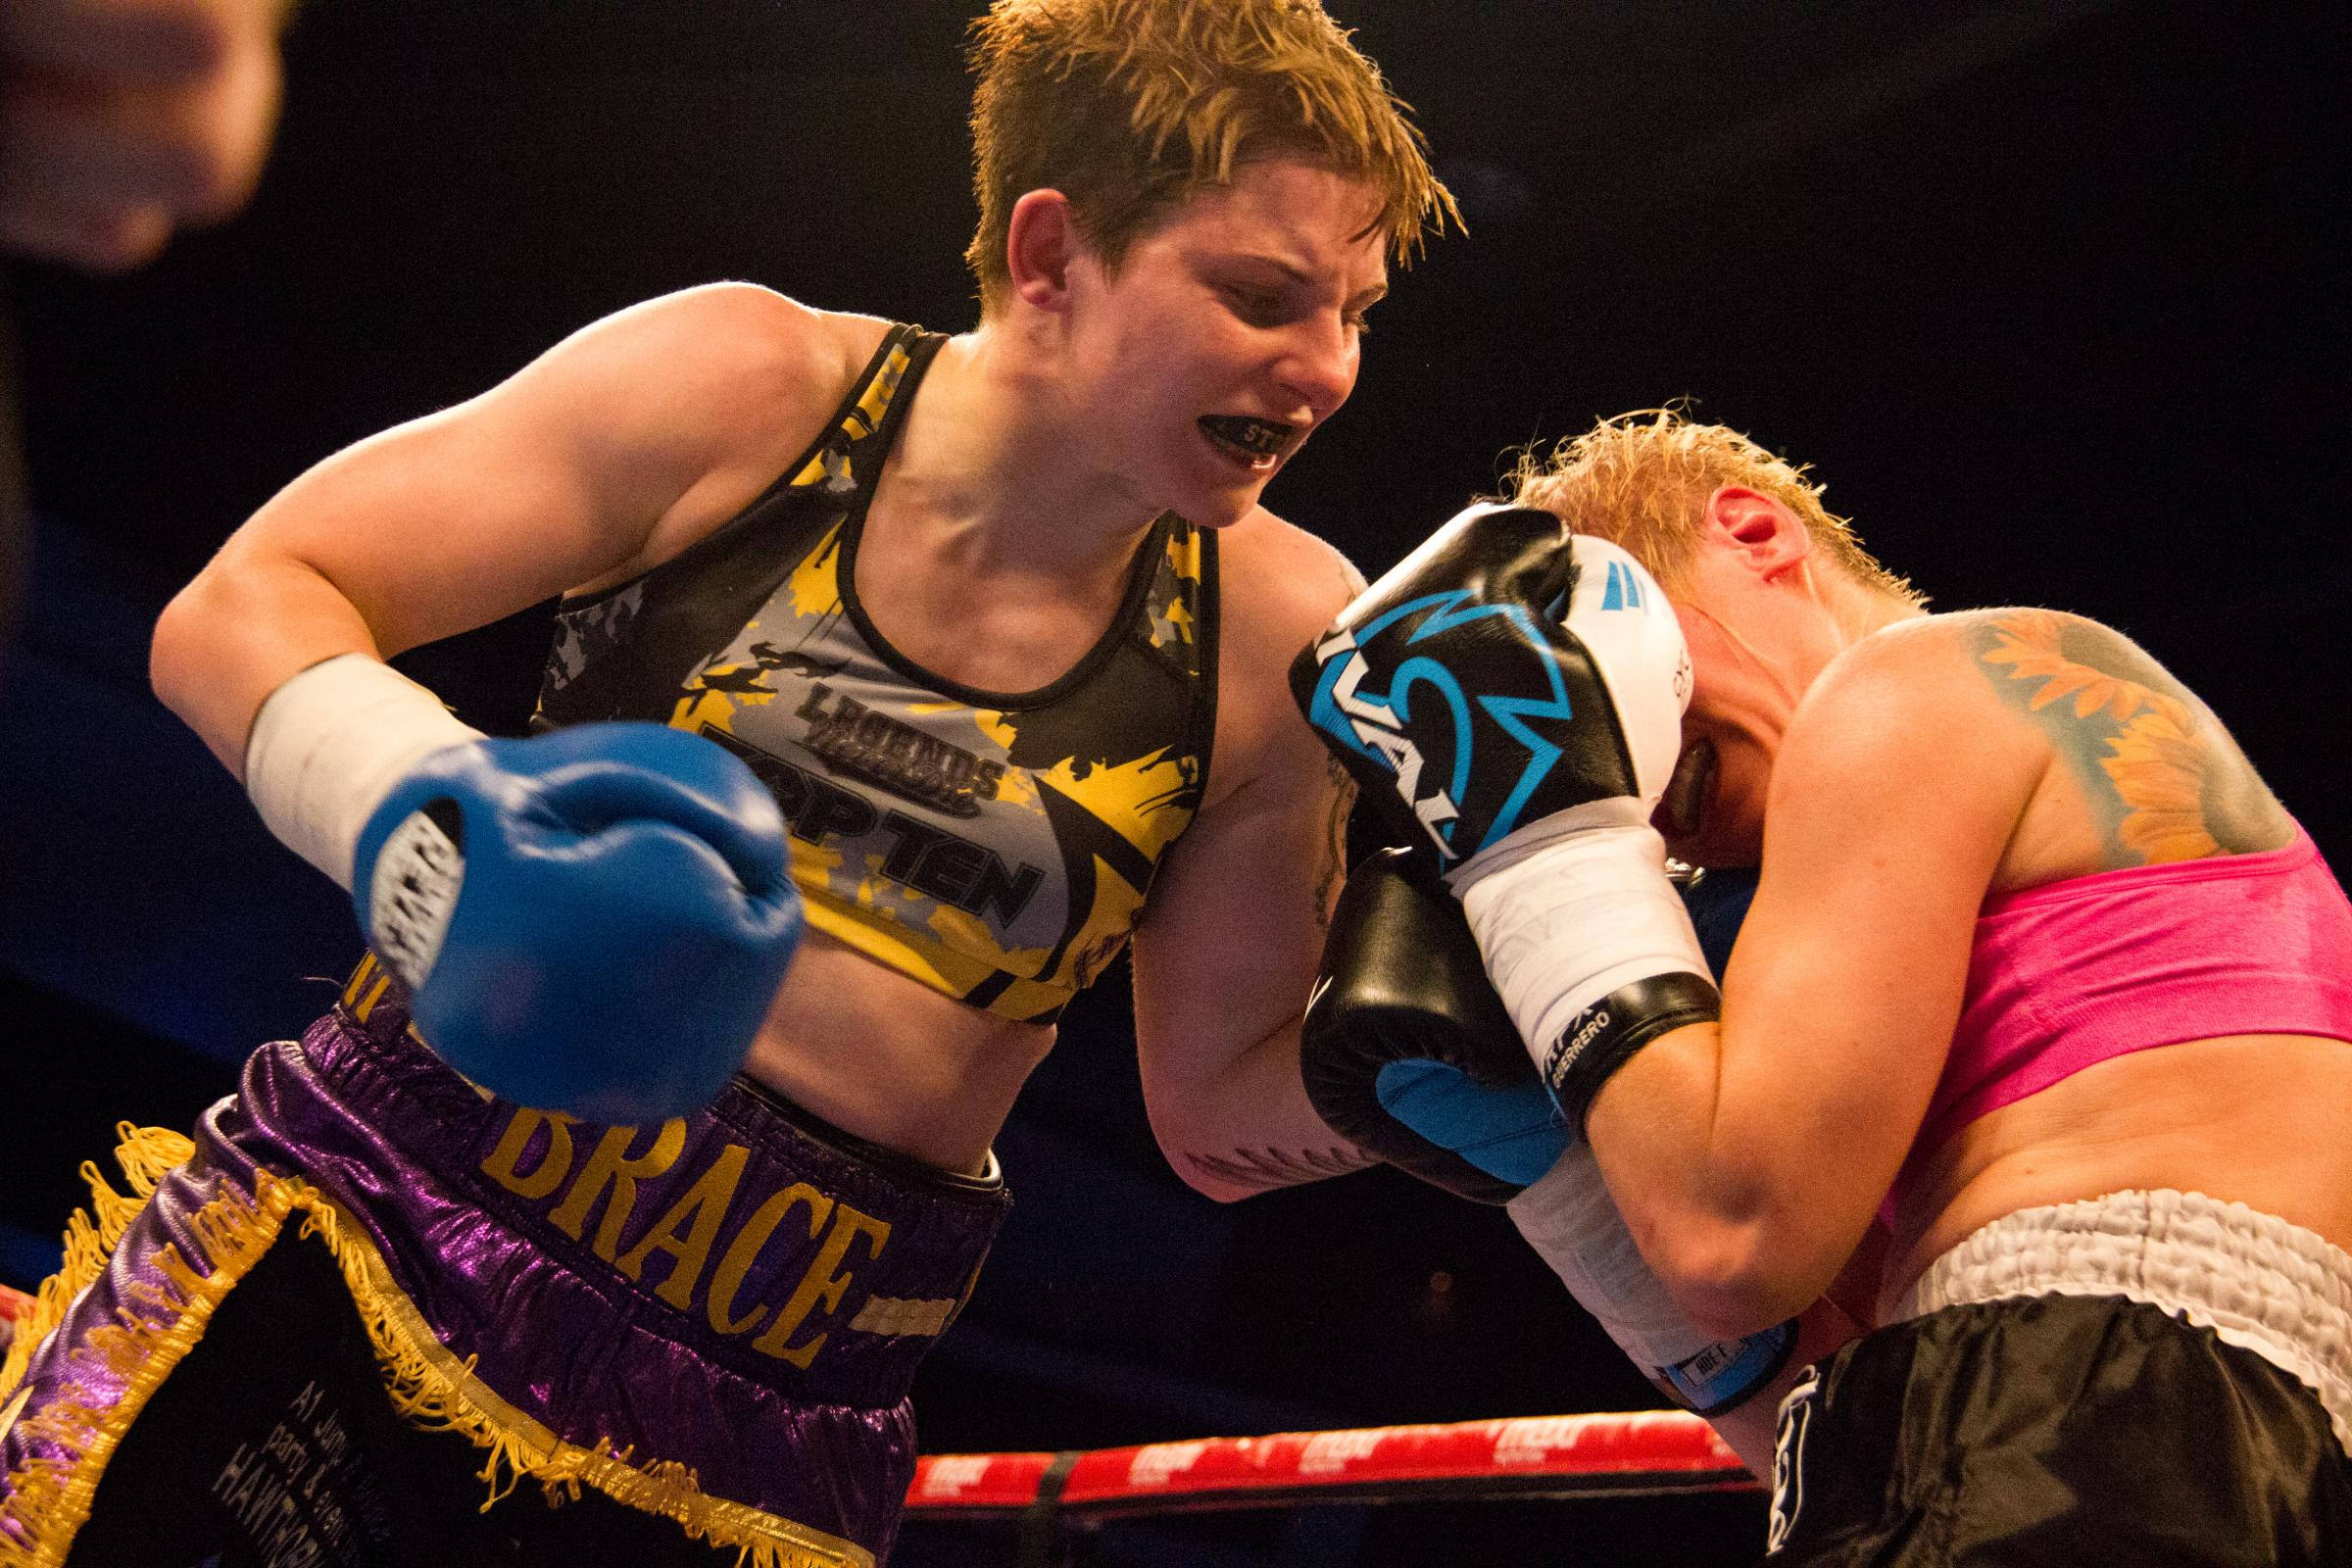 READY TO GO: Ashley Brace has the European title in her sights. Picture: www.liamhartery.com